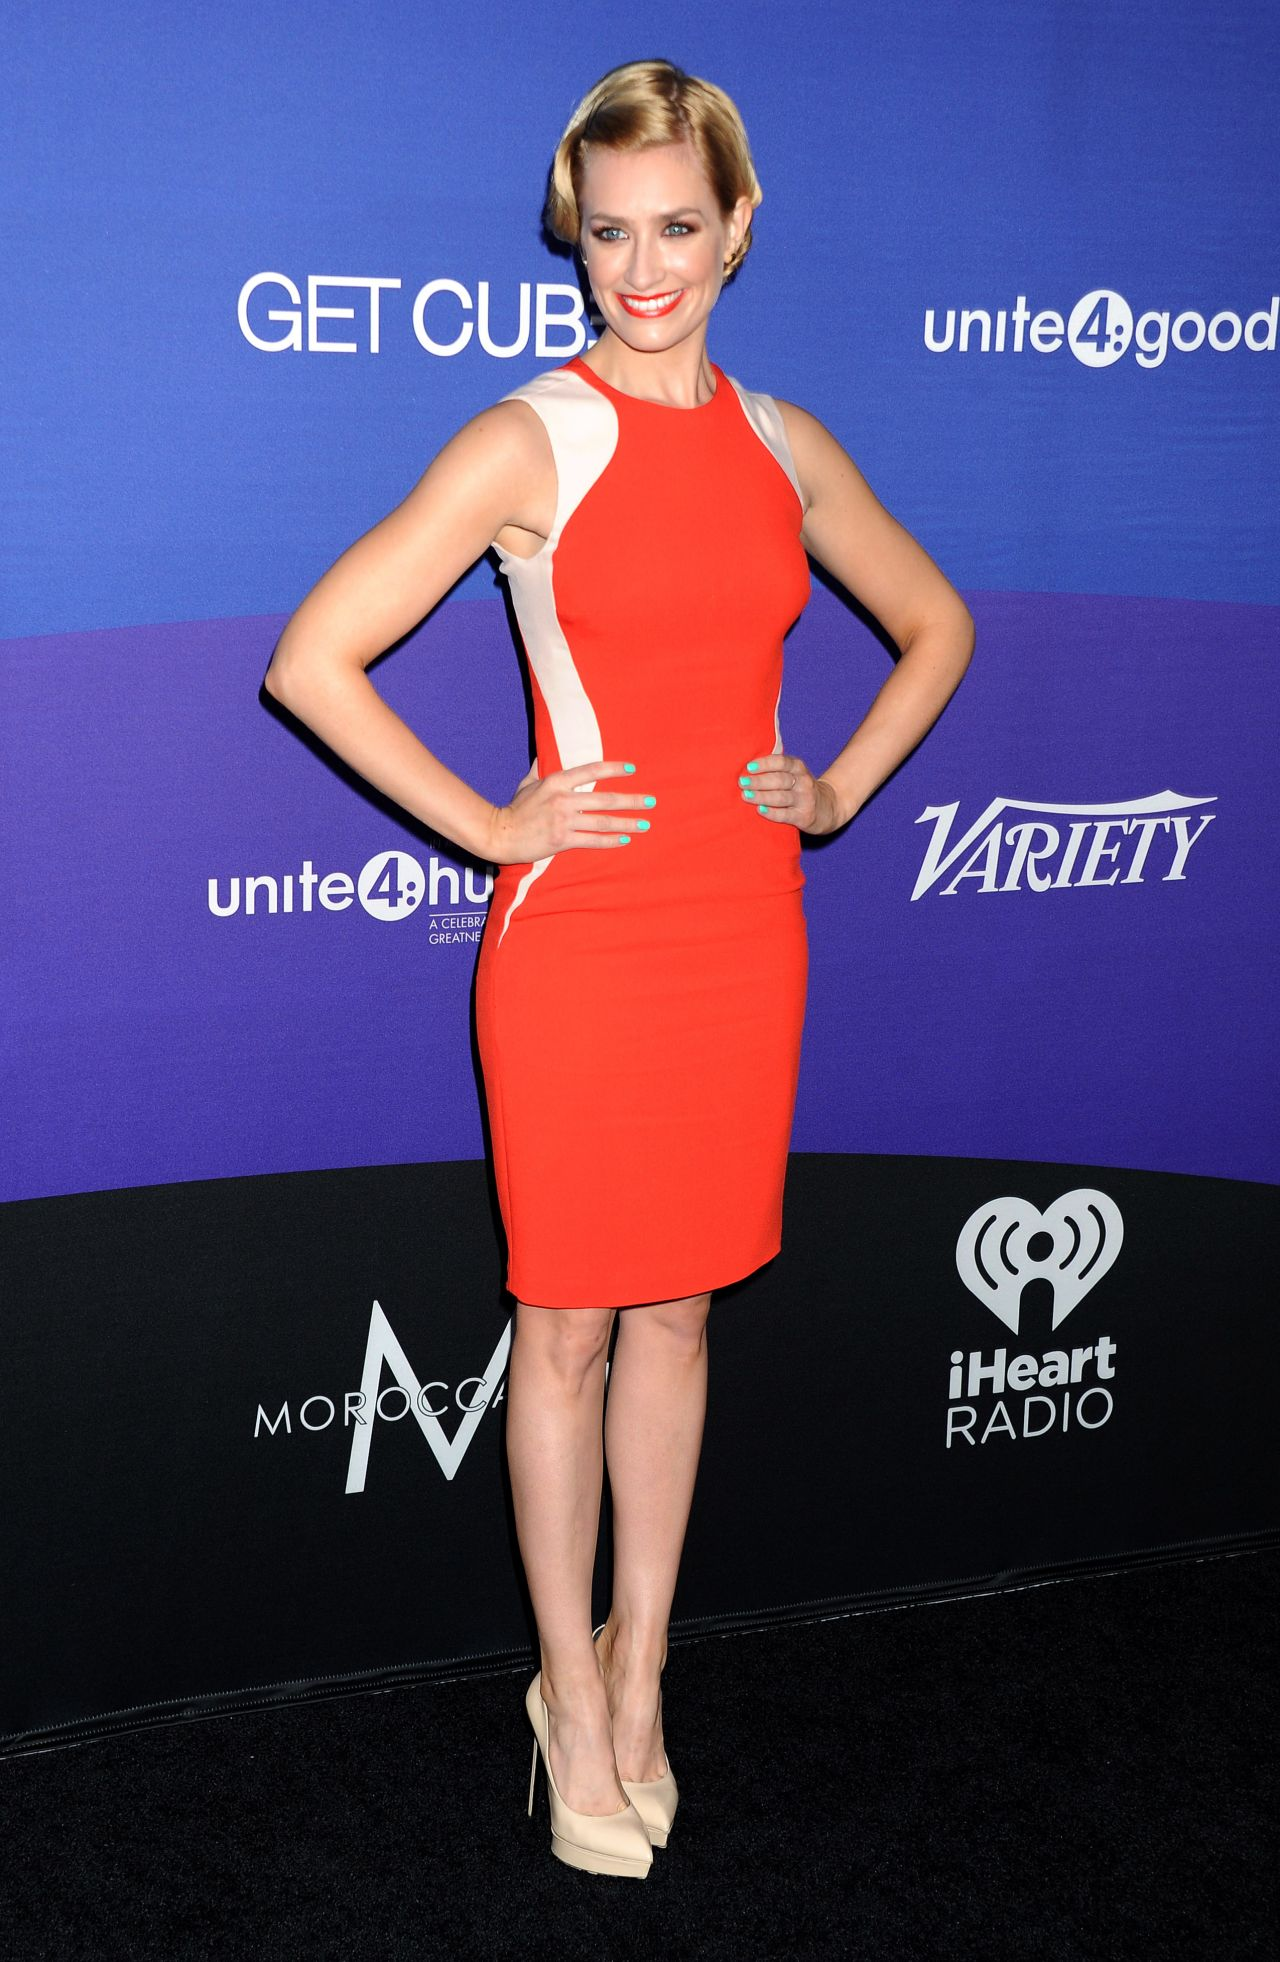 Beth Behrs - Variety's unite4:humanity Gala – February 2014